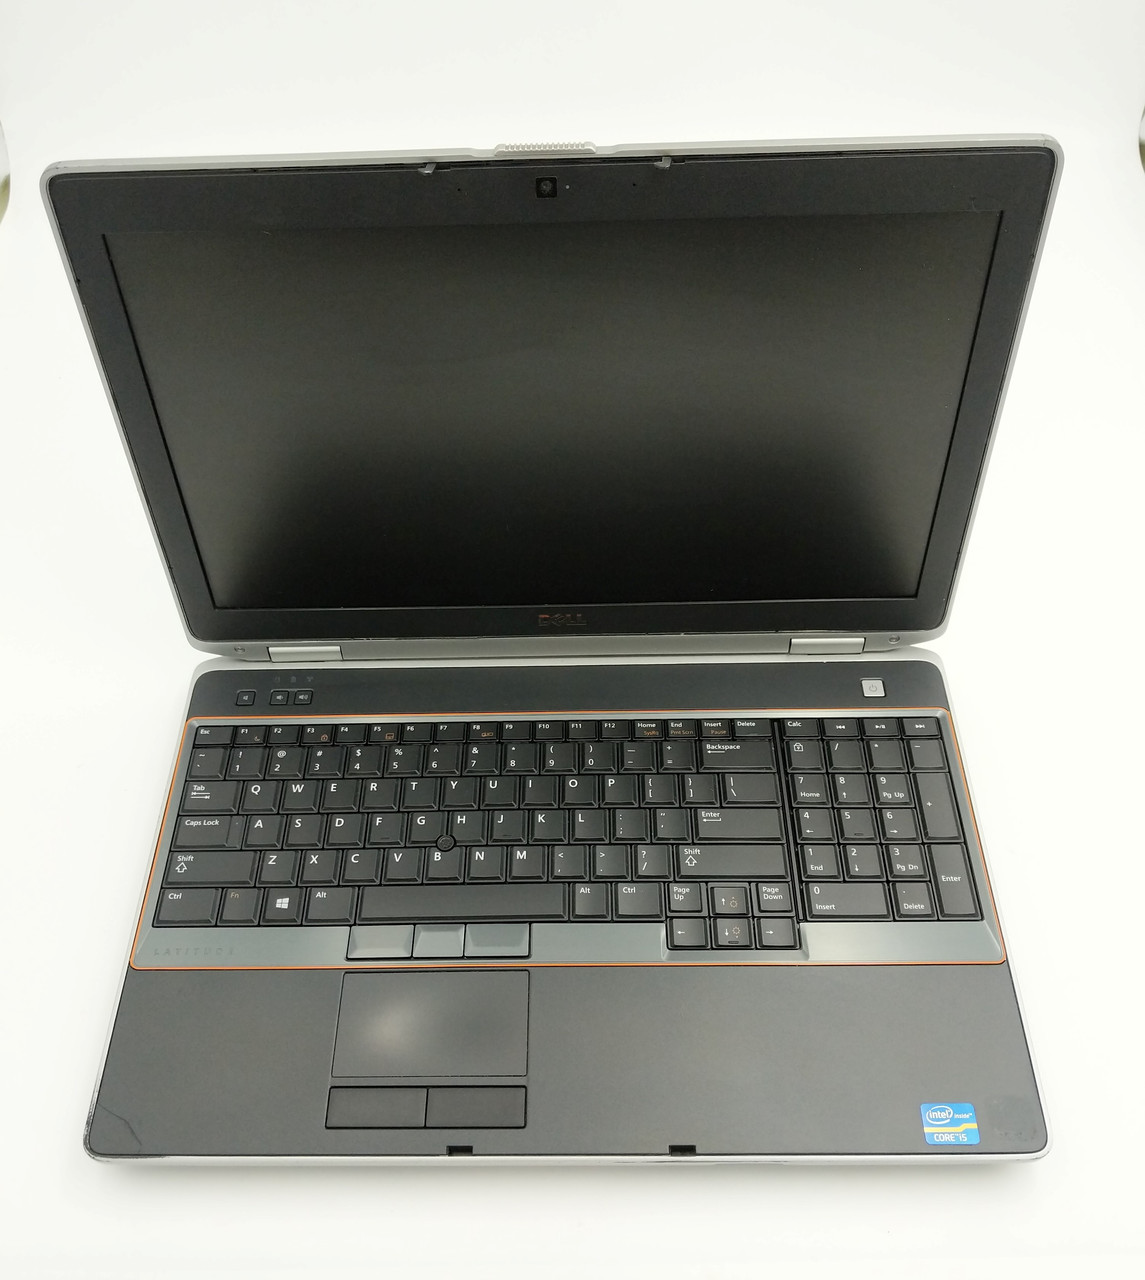 Б/У Dell Latitude E6520 15.6″ i5-2520M /DDR3 8 Gb /SSD 240 Gb / Нет в наличии 3